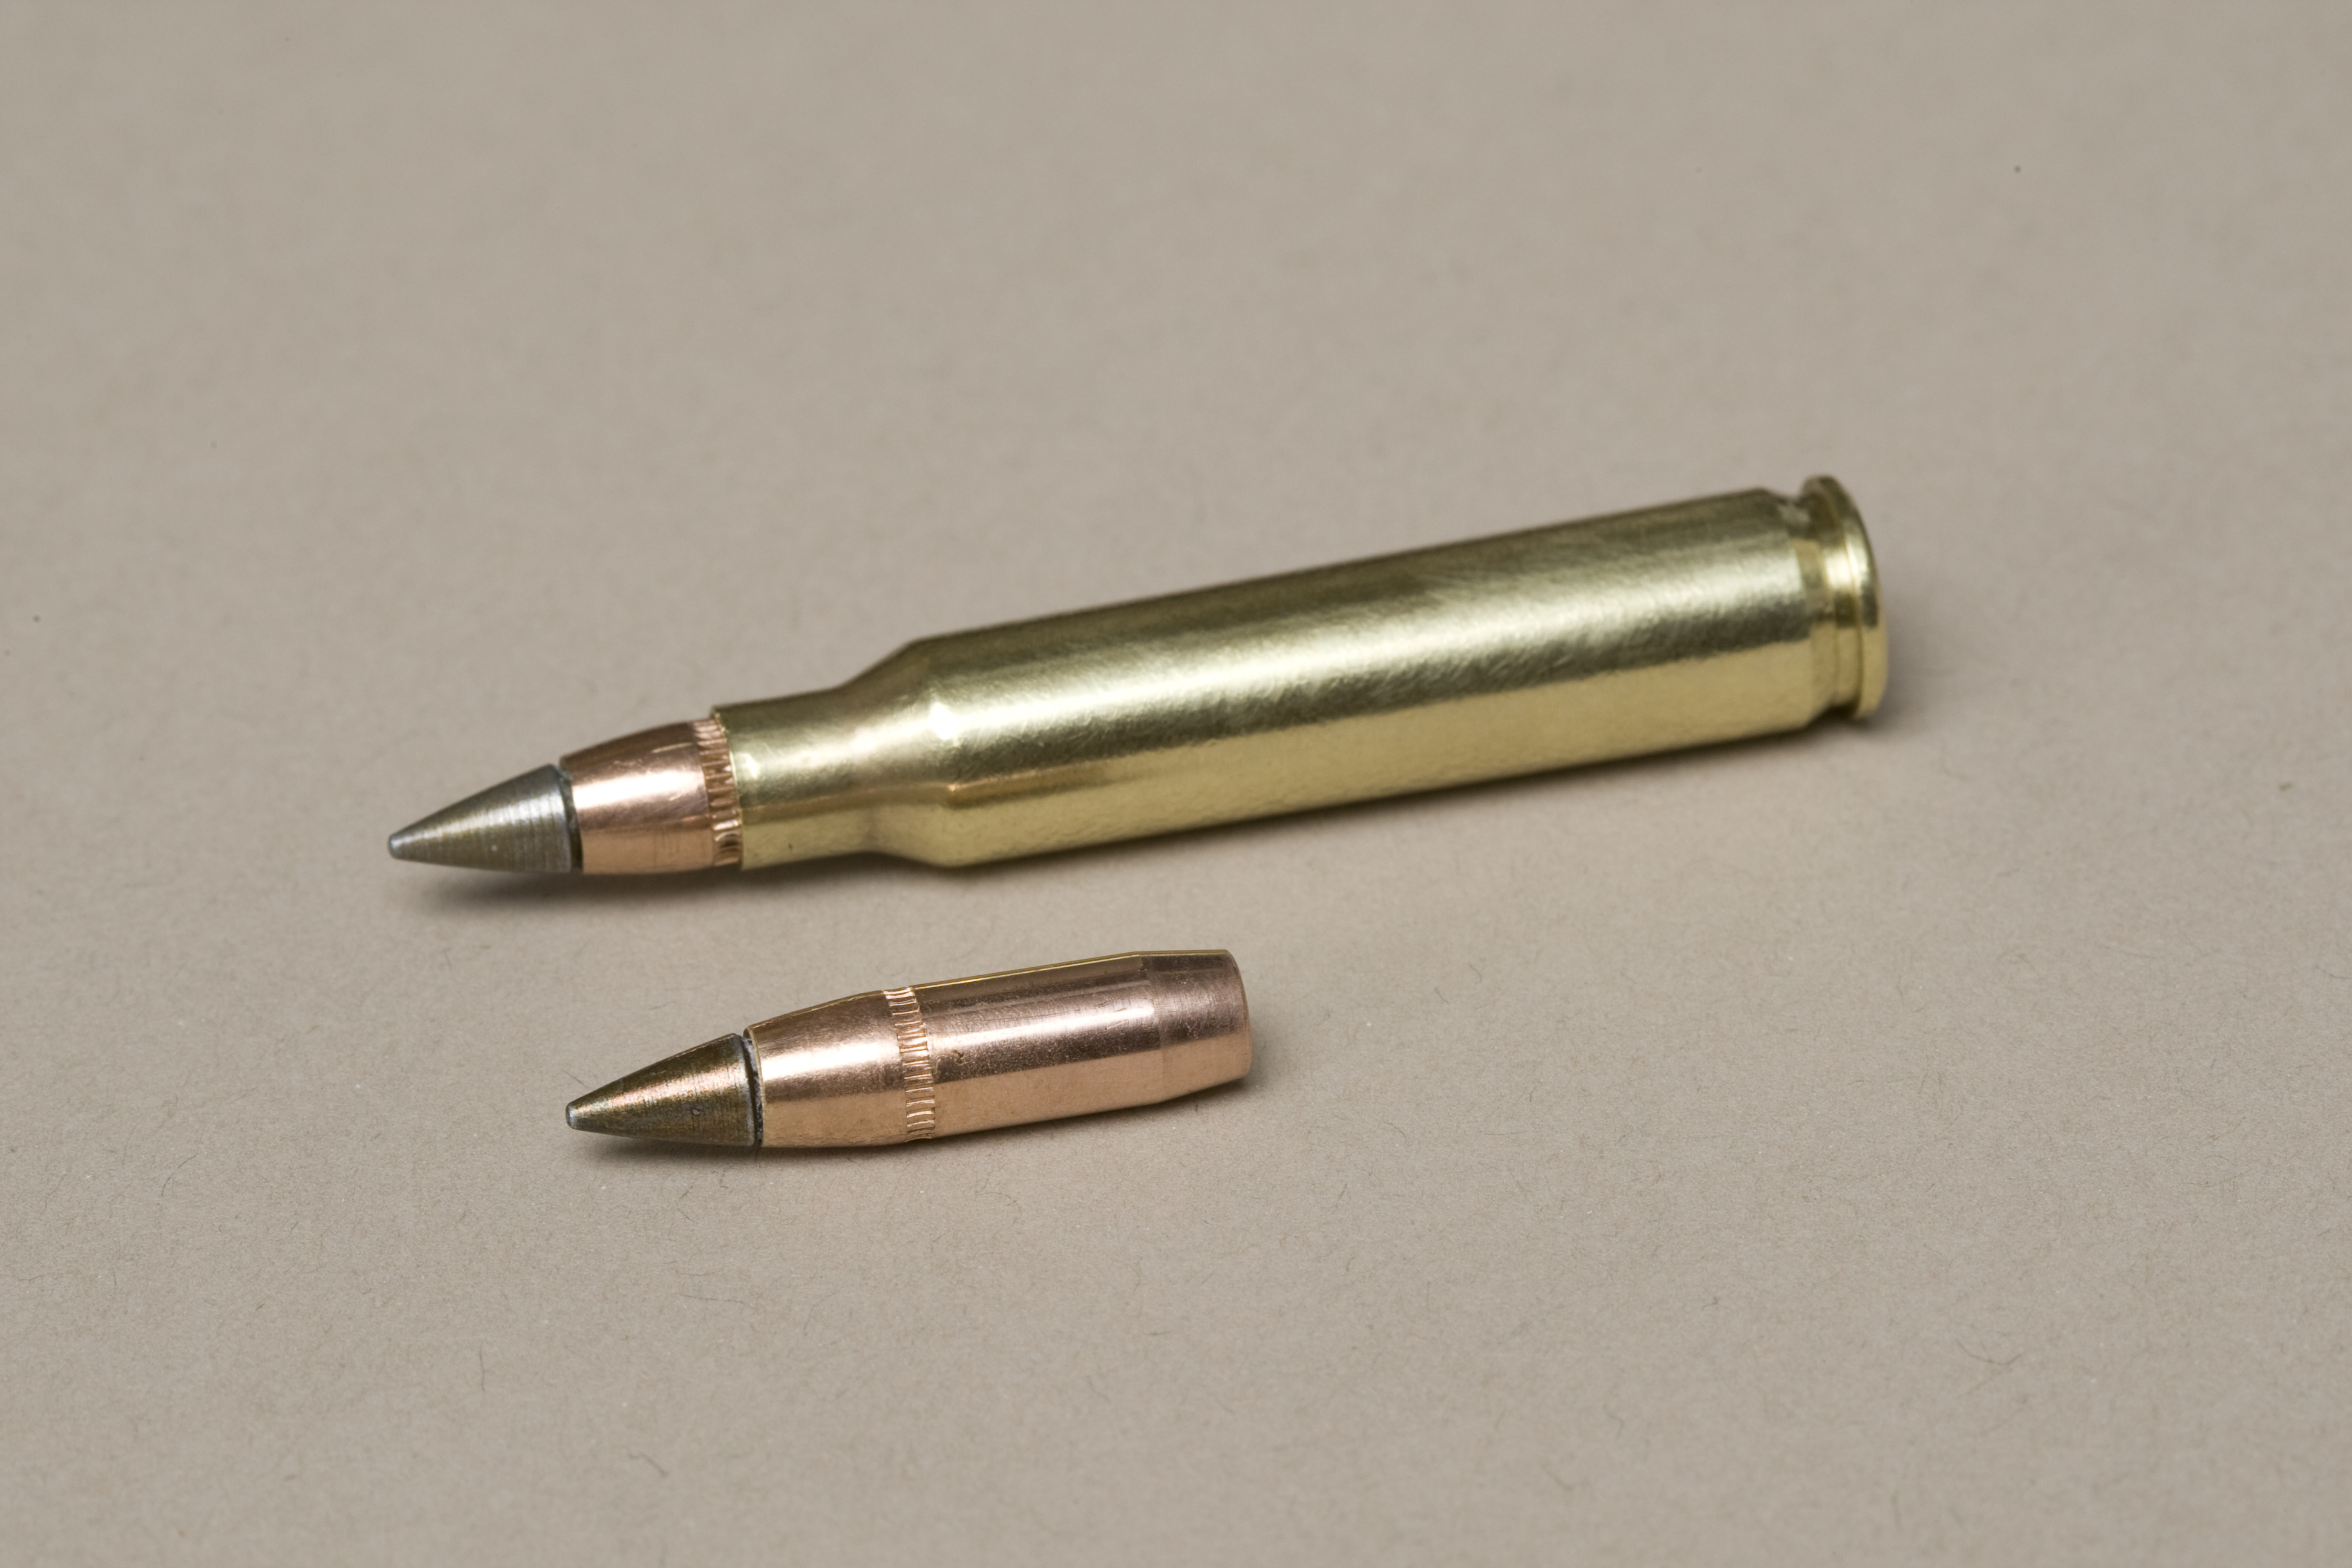 """7.62mm NATO EPR (Enhanced Performance Round) """"Green Ammo"""" Bullet with Hardened Steel Penetrator: How will it stack up to the ATK/Federal MK319 MOD 0 SOST Round?"""